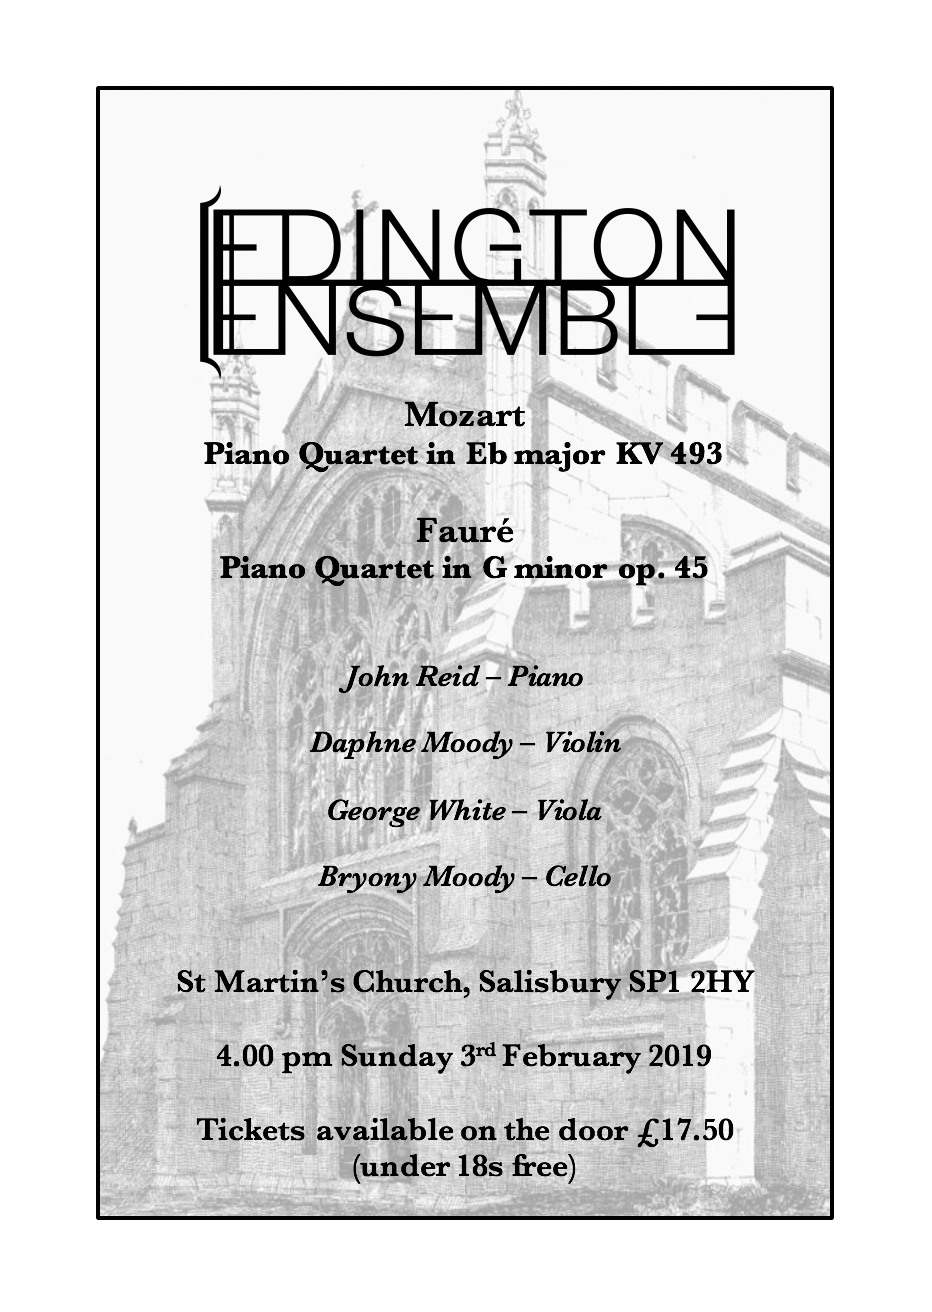 Edington Ensemble